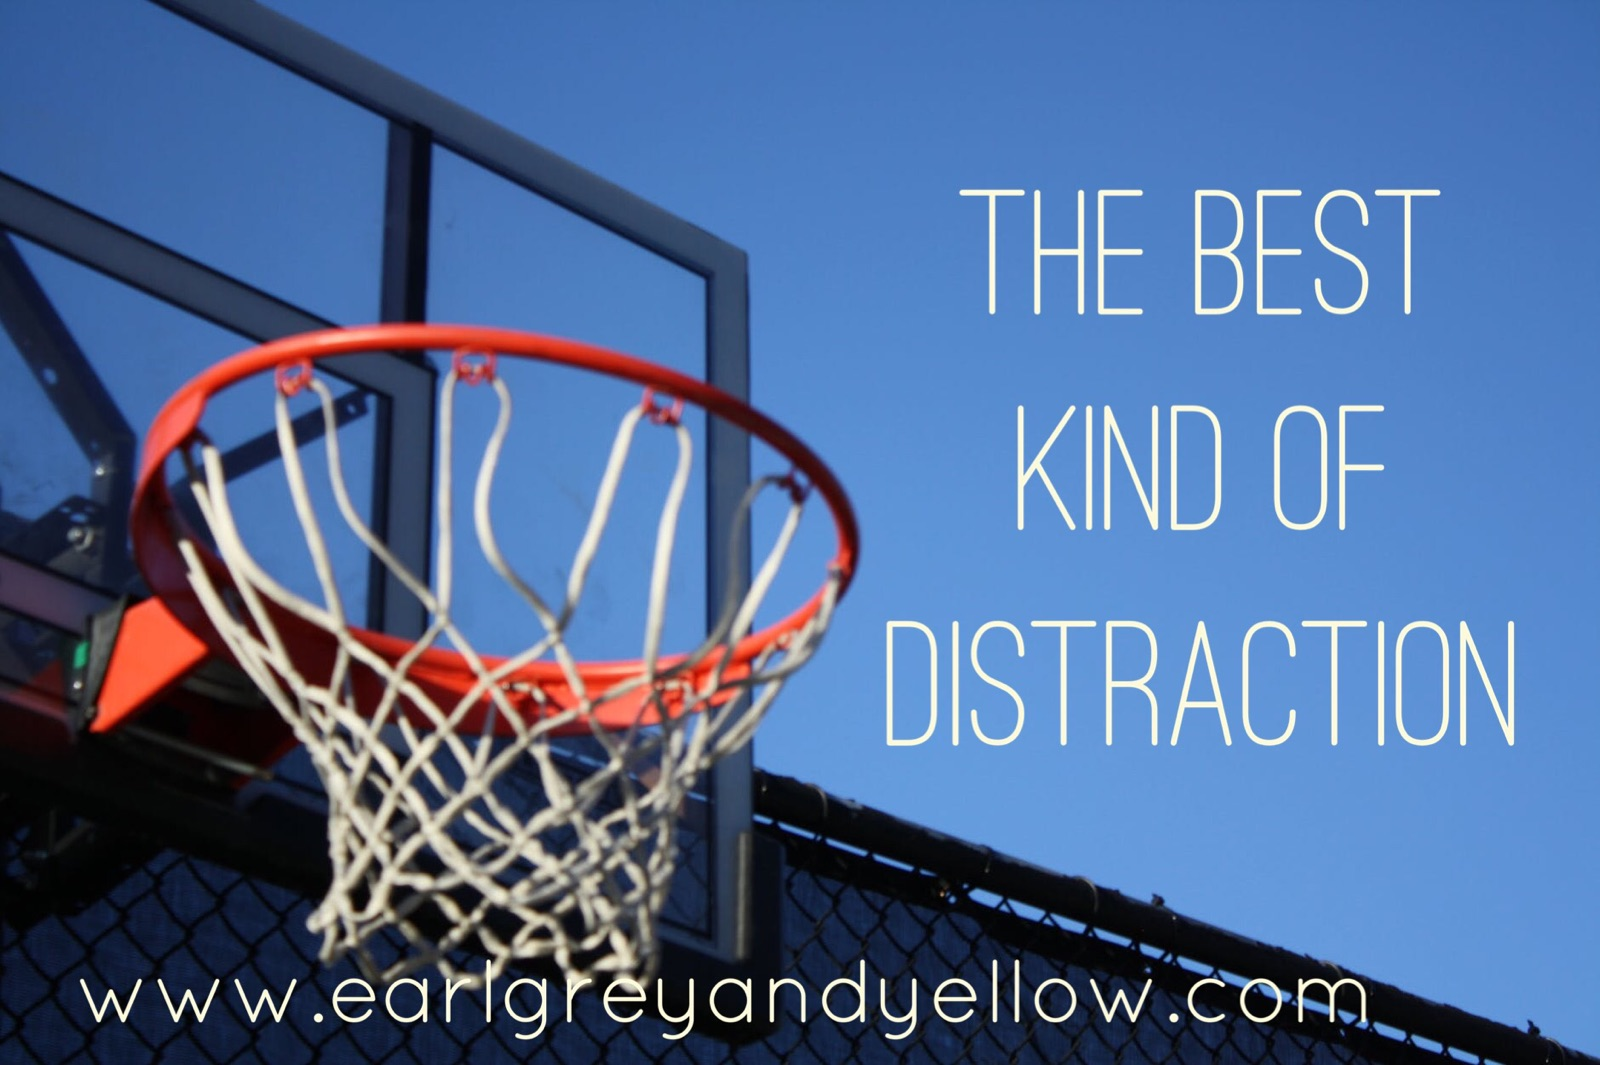 The Best Kind of Distraction